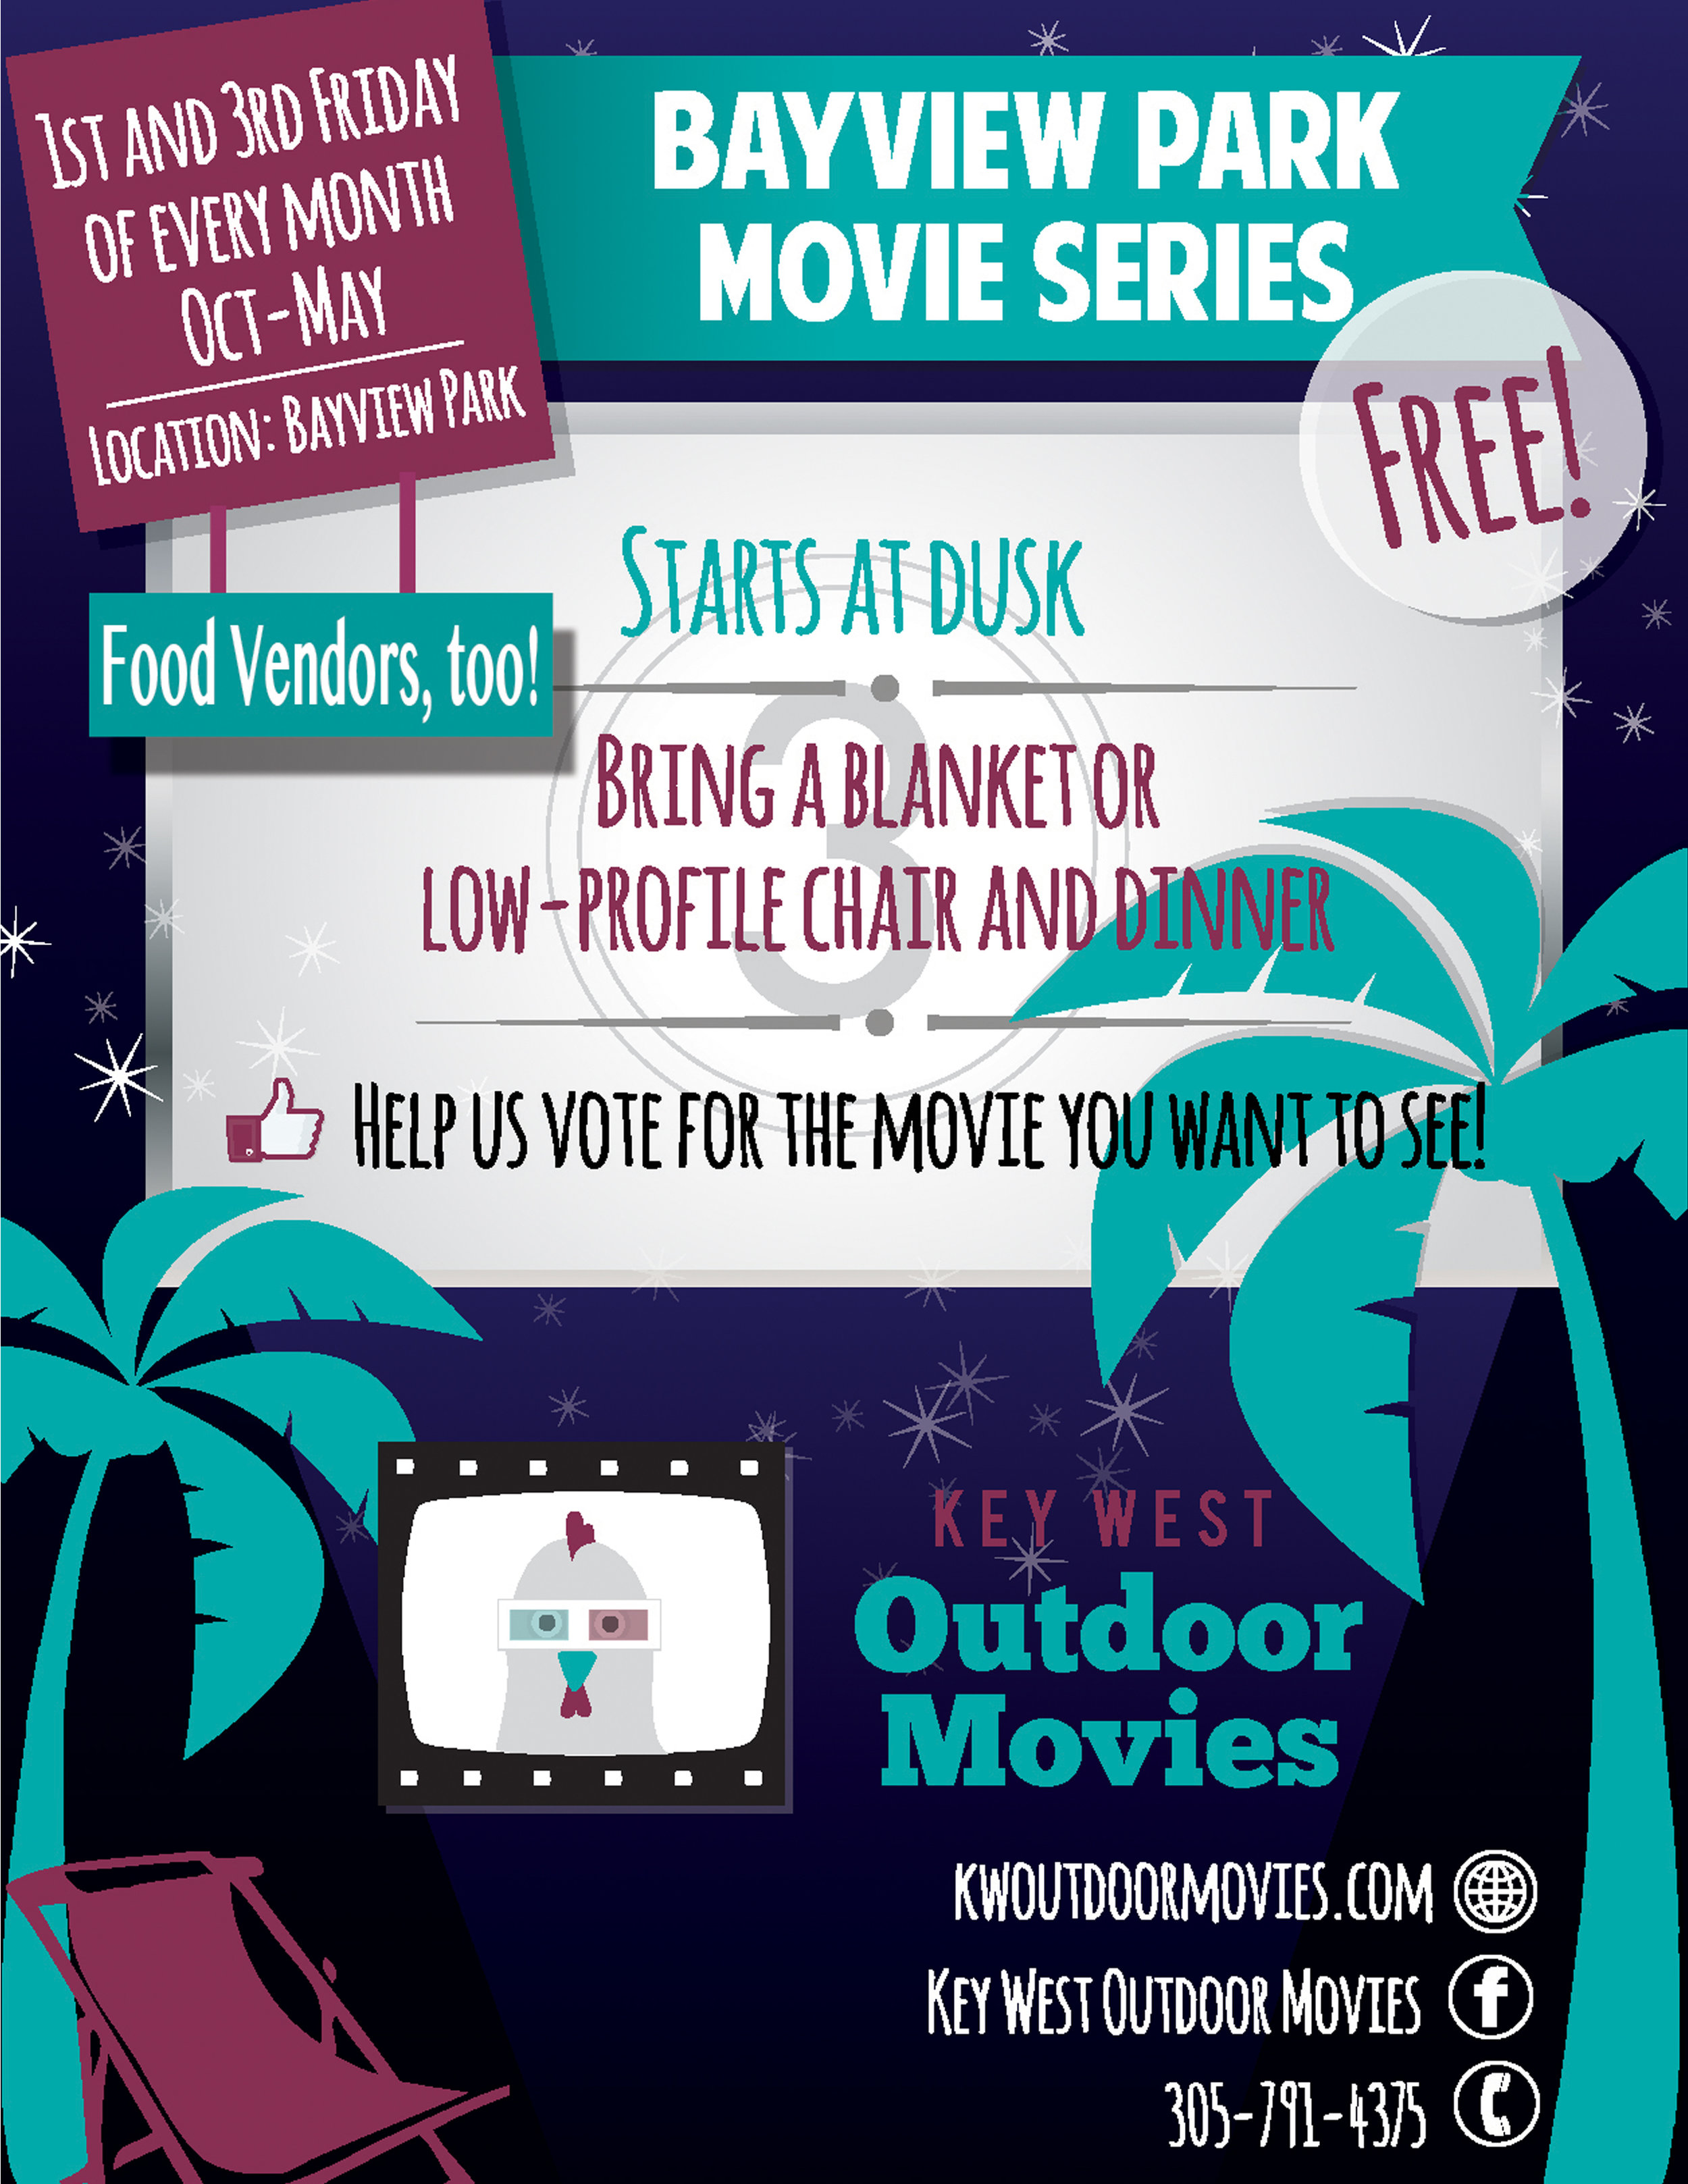 bayview park movie series